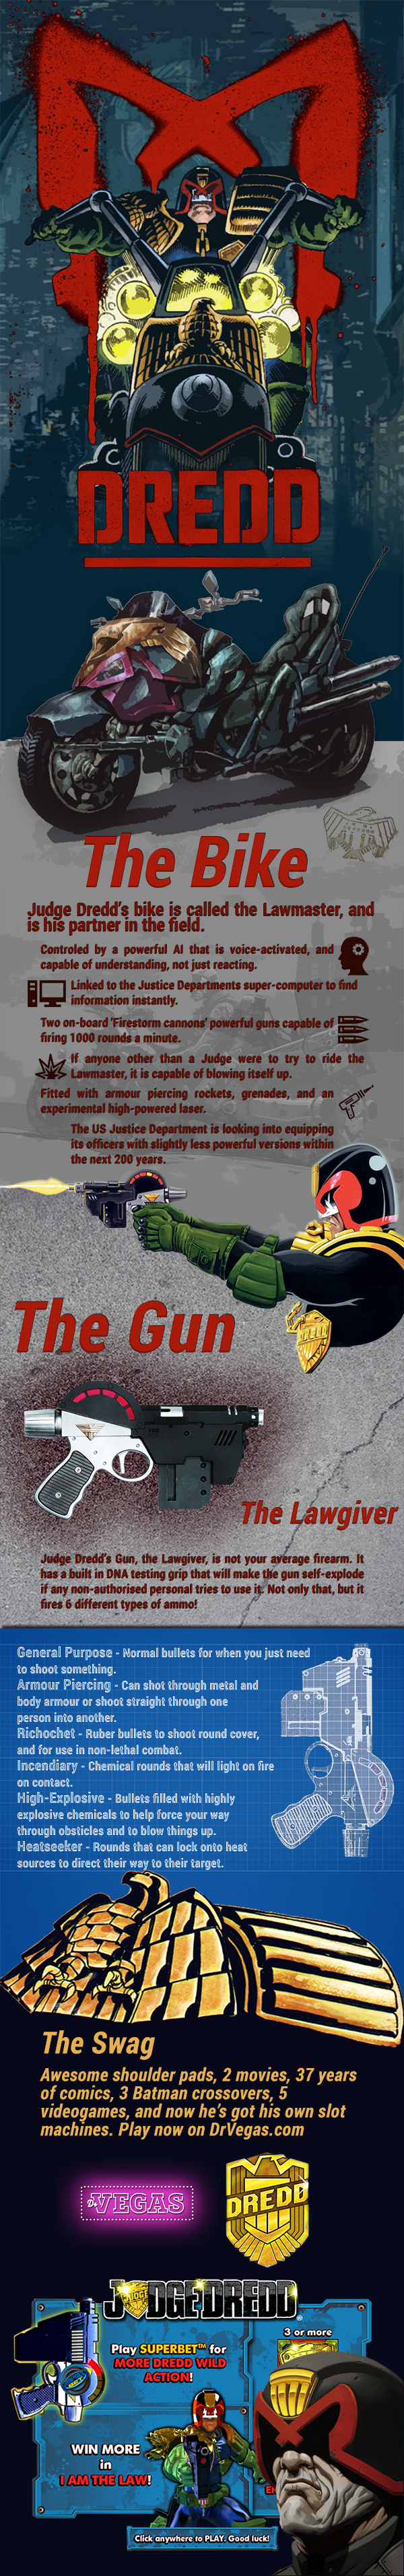 judge-dredd-infographic